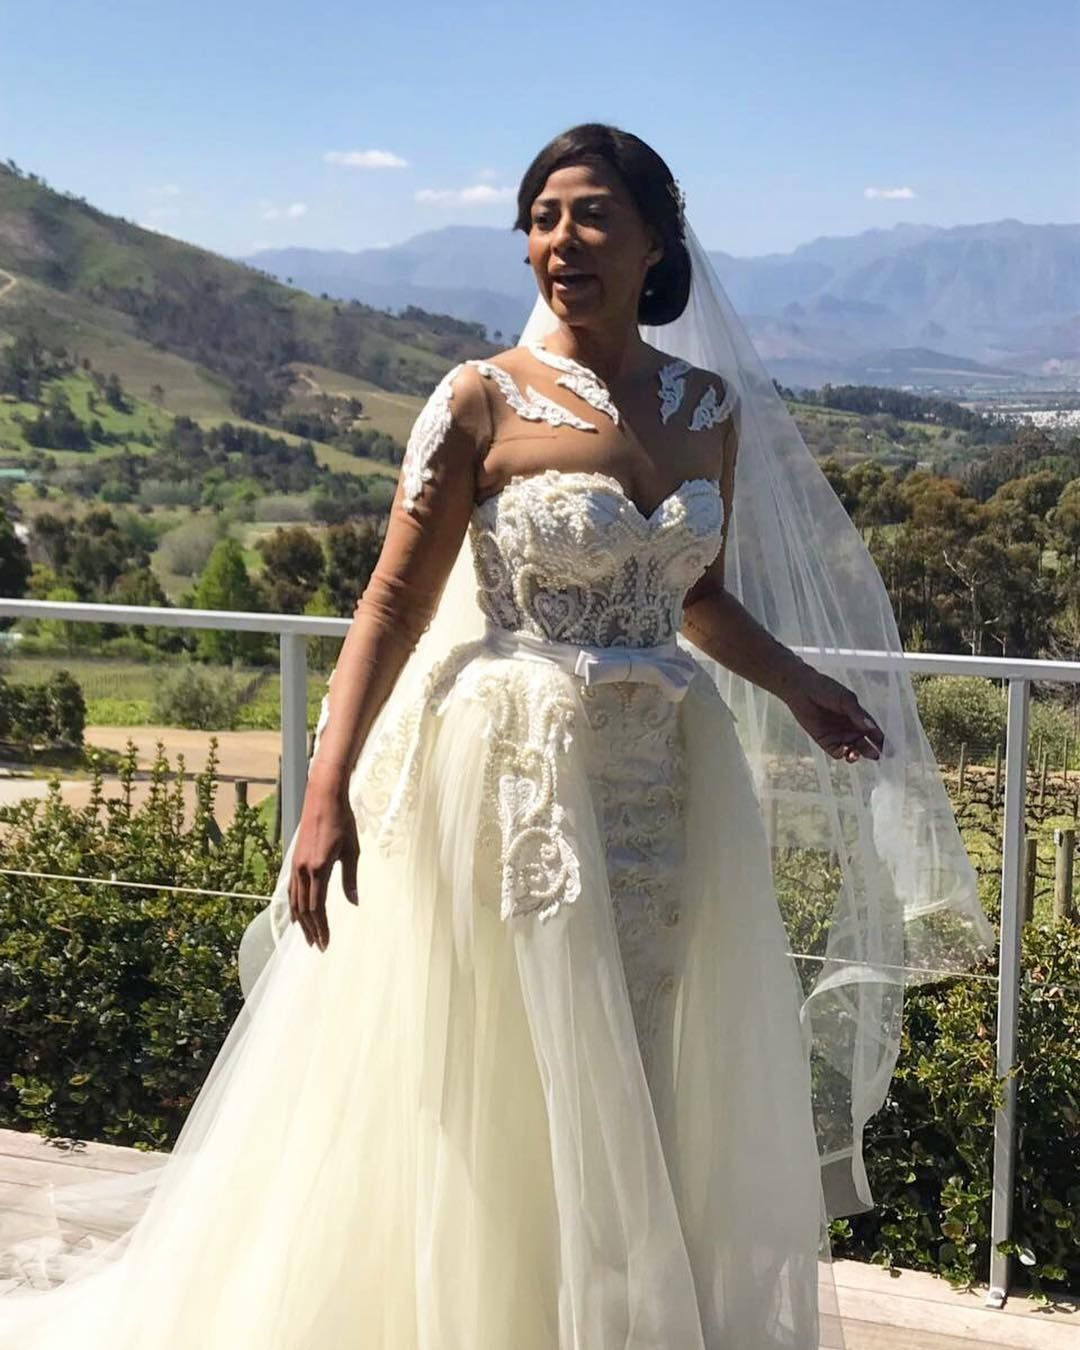 Altar Wedding Dresses: Love At First Sight:Orapeleng Modutle's Dresses Will Blow